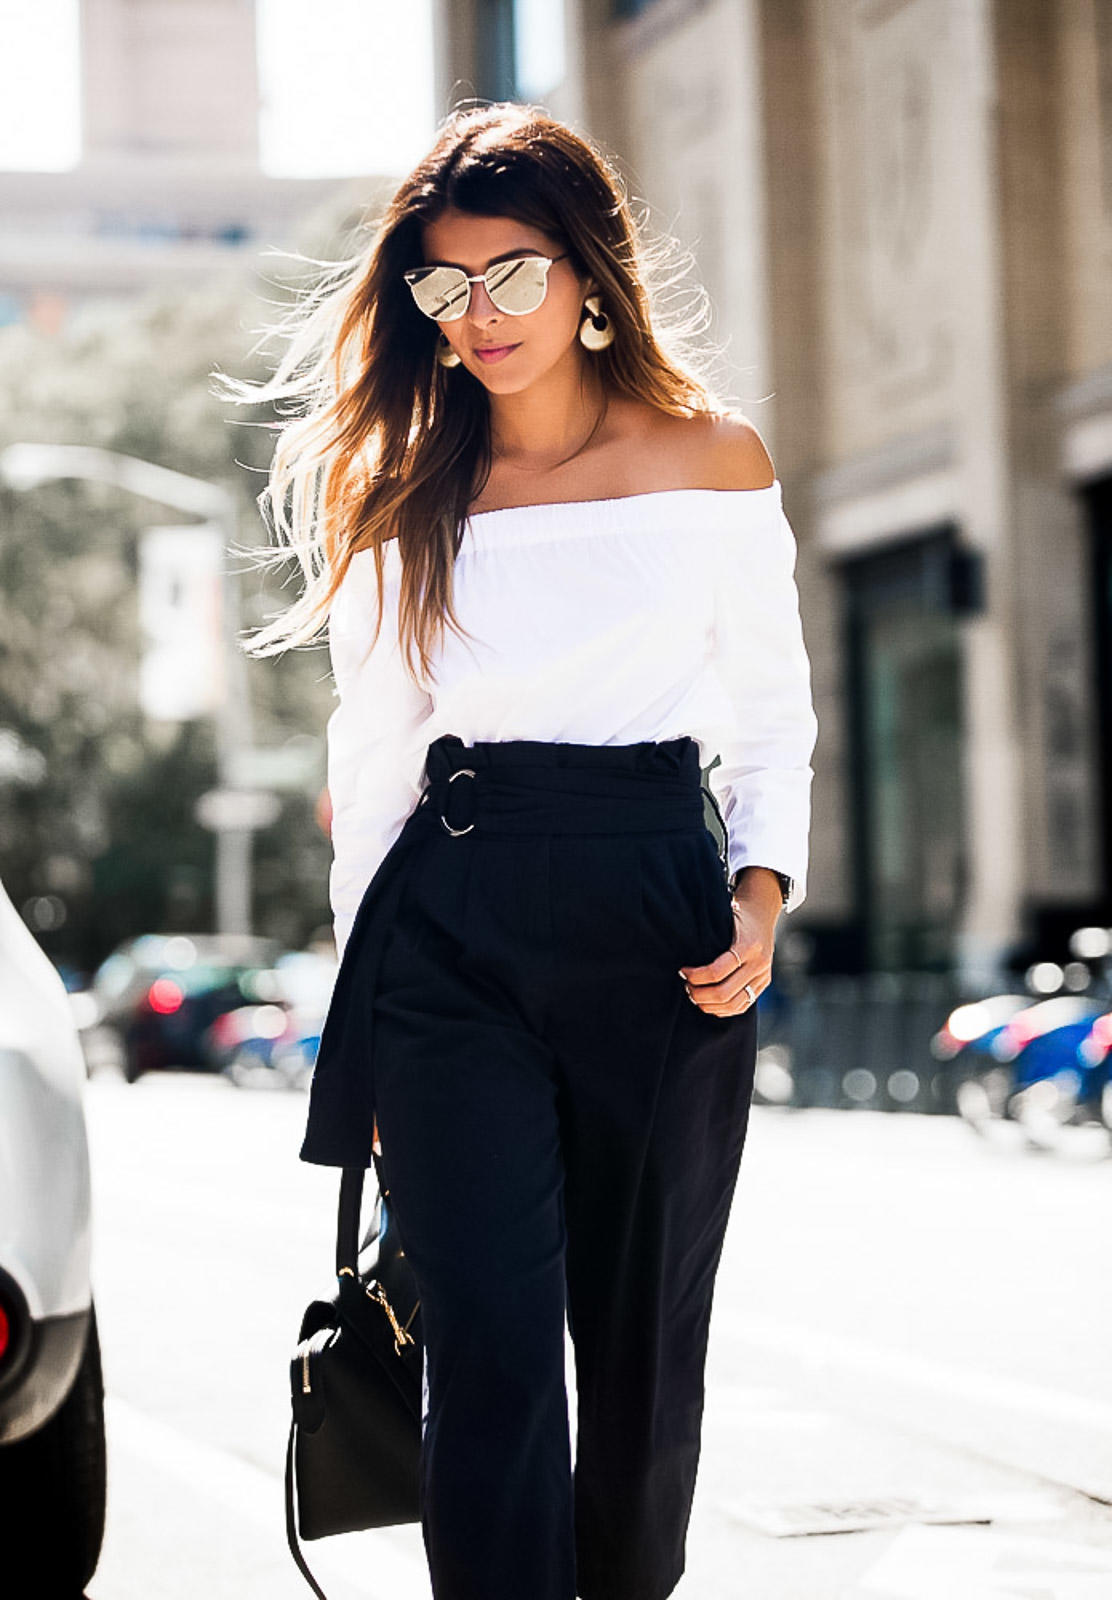 Off-the-Shoulder-top-and-high-waist-navy-pants-The-Girl-From-Panama-@pamhetlinger-2.jpg